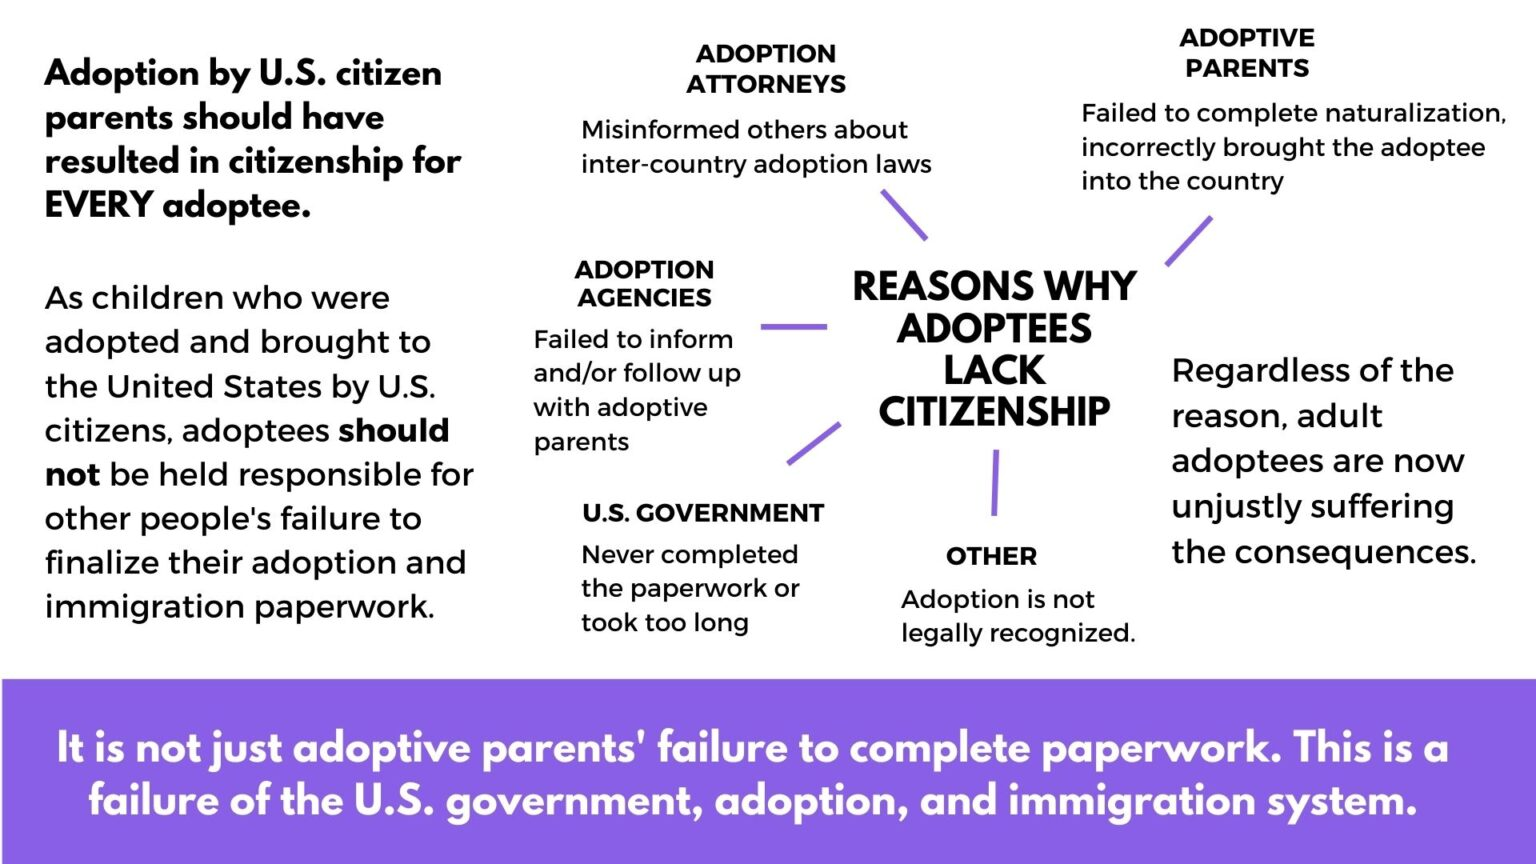 reappropriate.co: The US Immigration System is Failing a Crucial Voice: International Adoptees